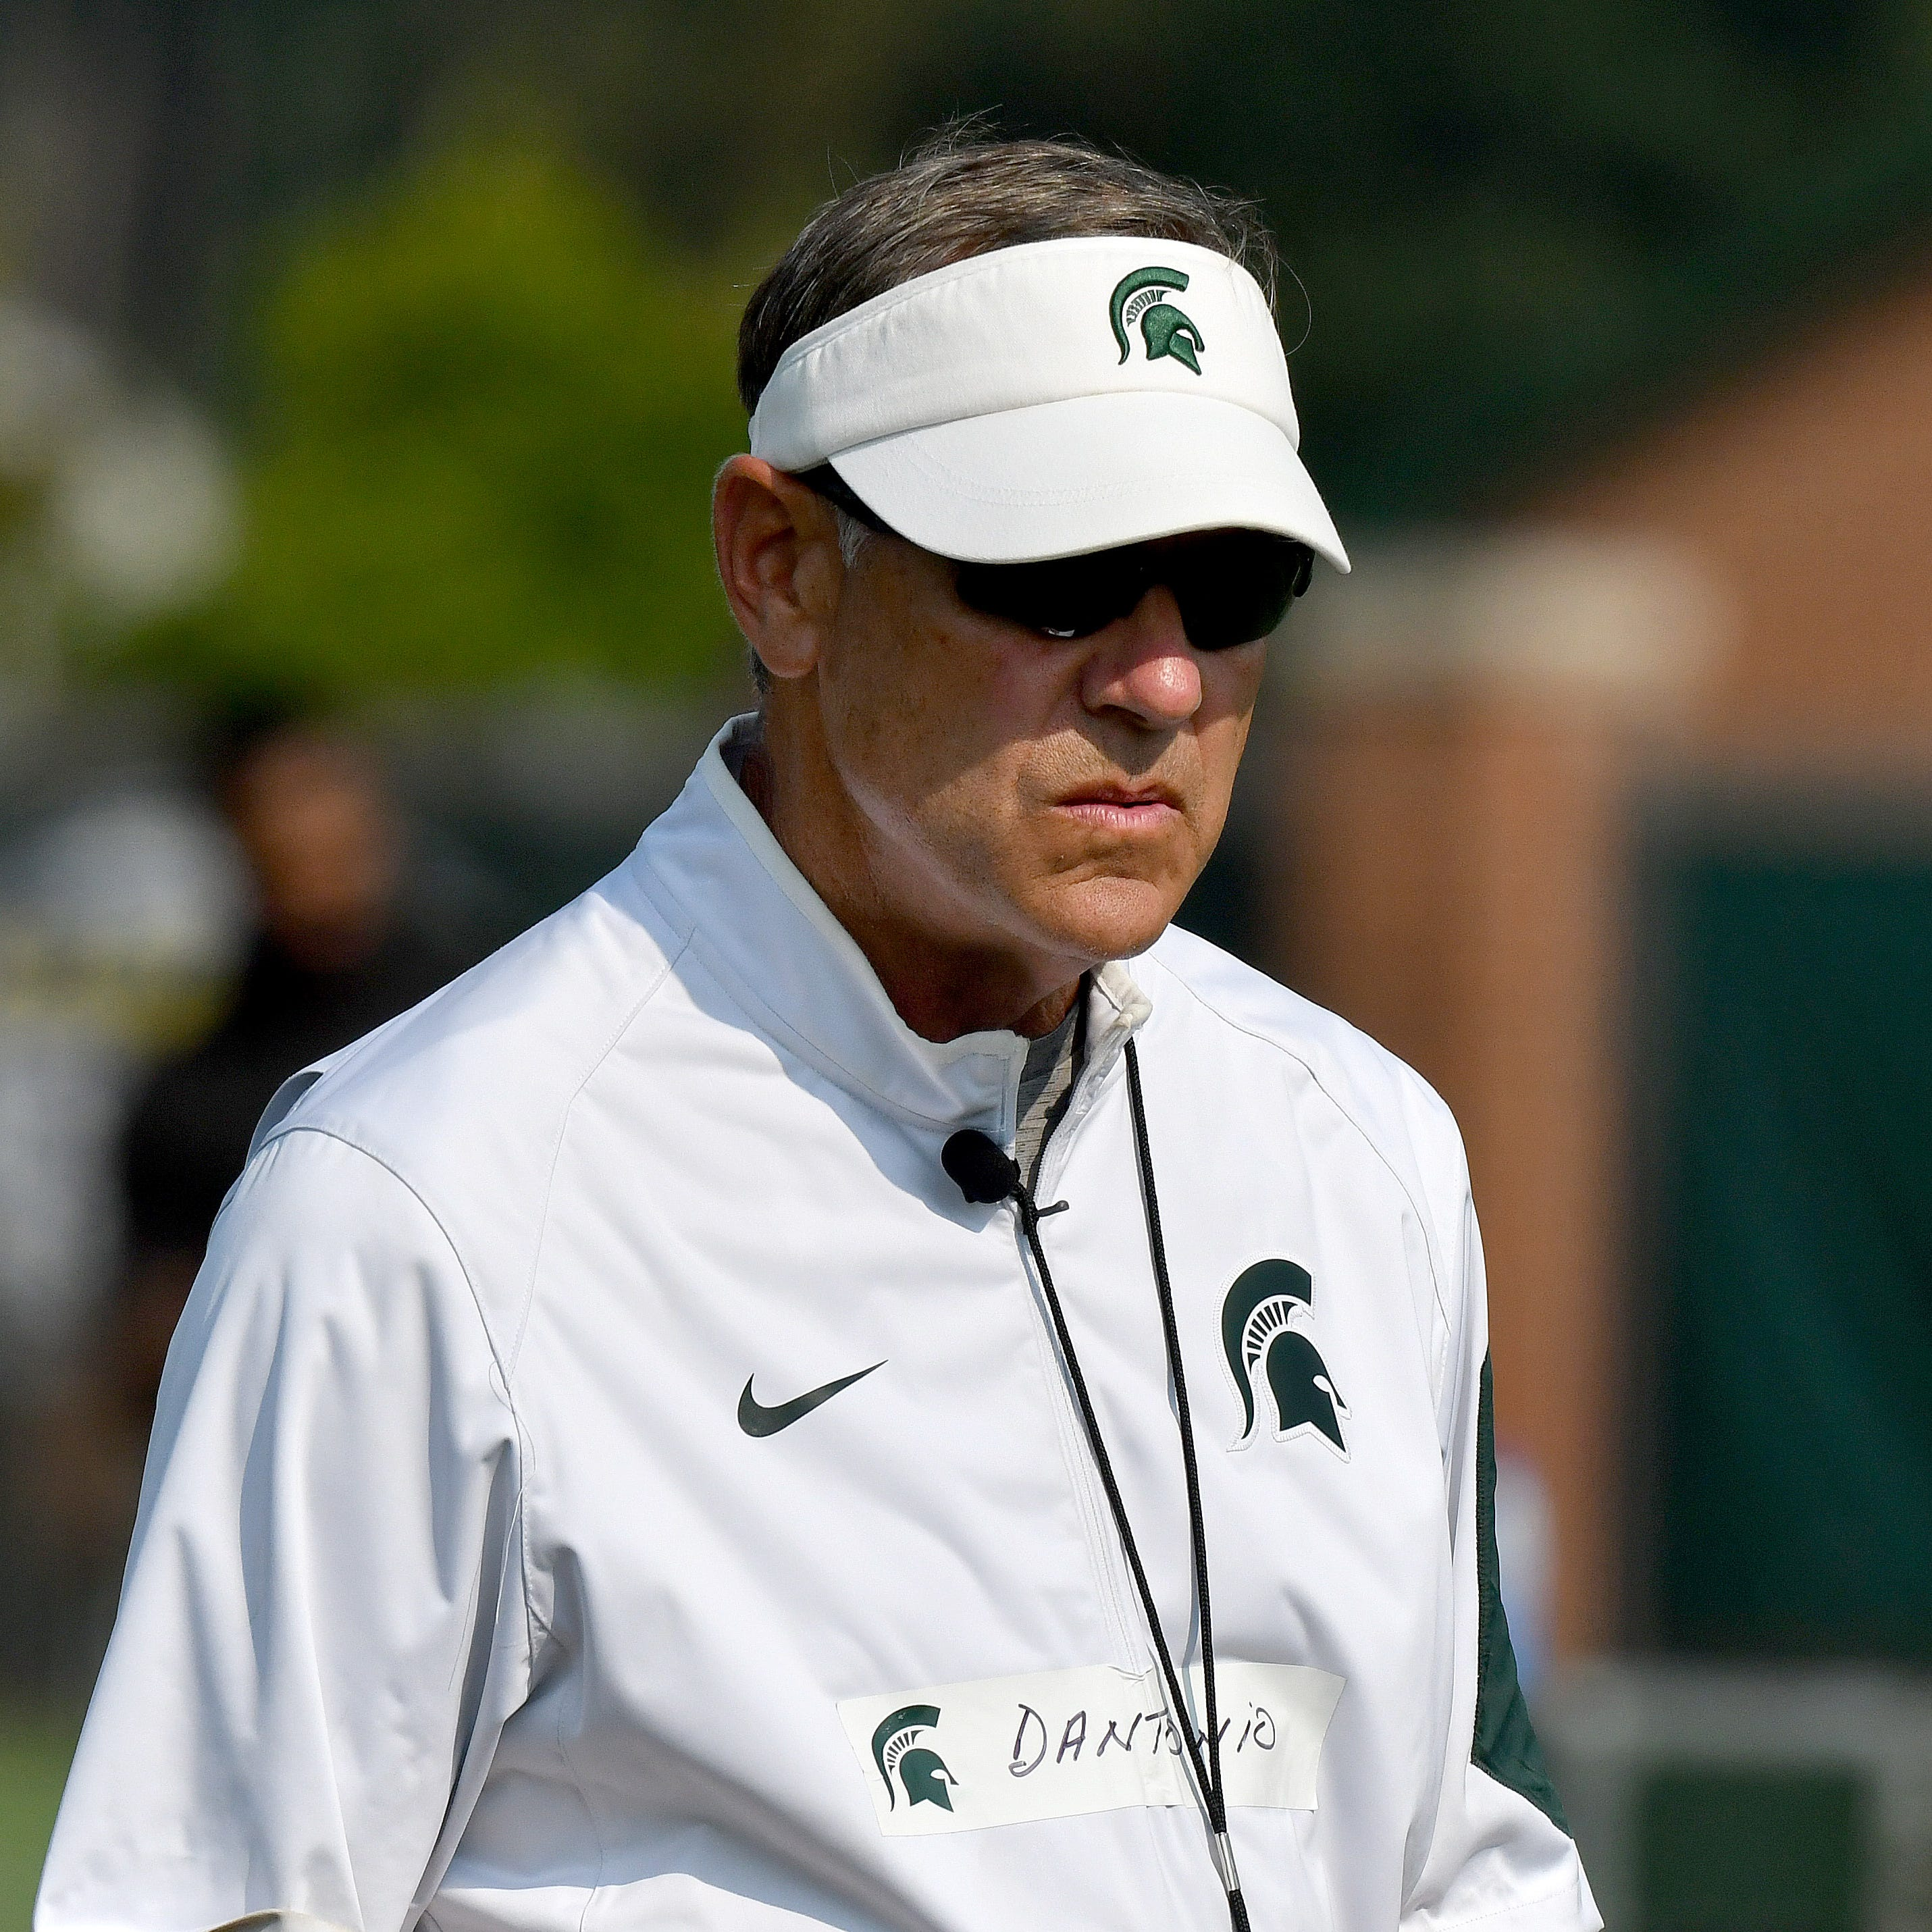 Dantonio blasts social media vitriol